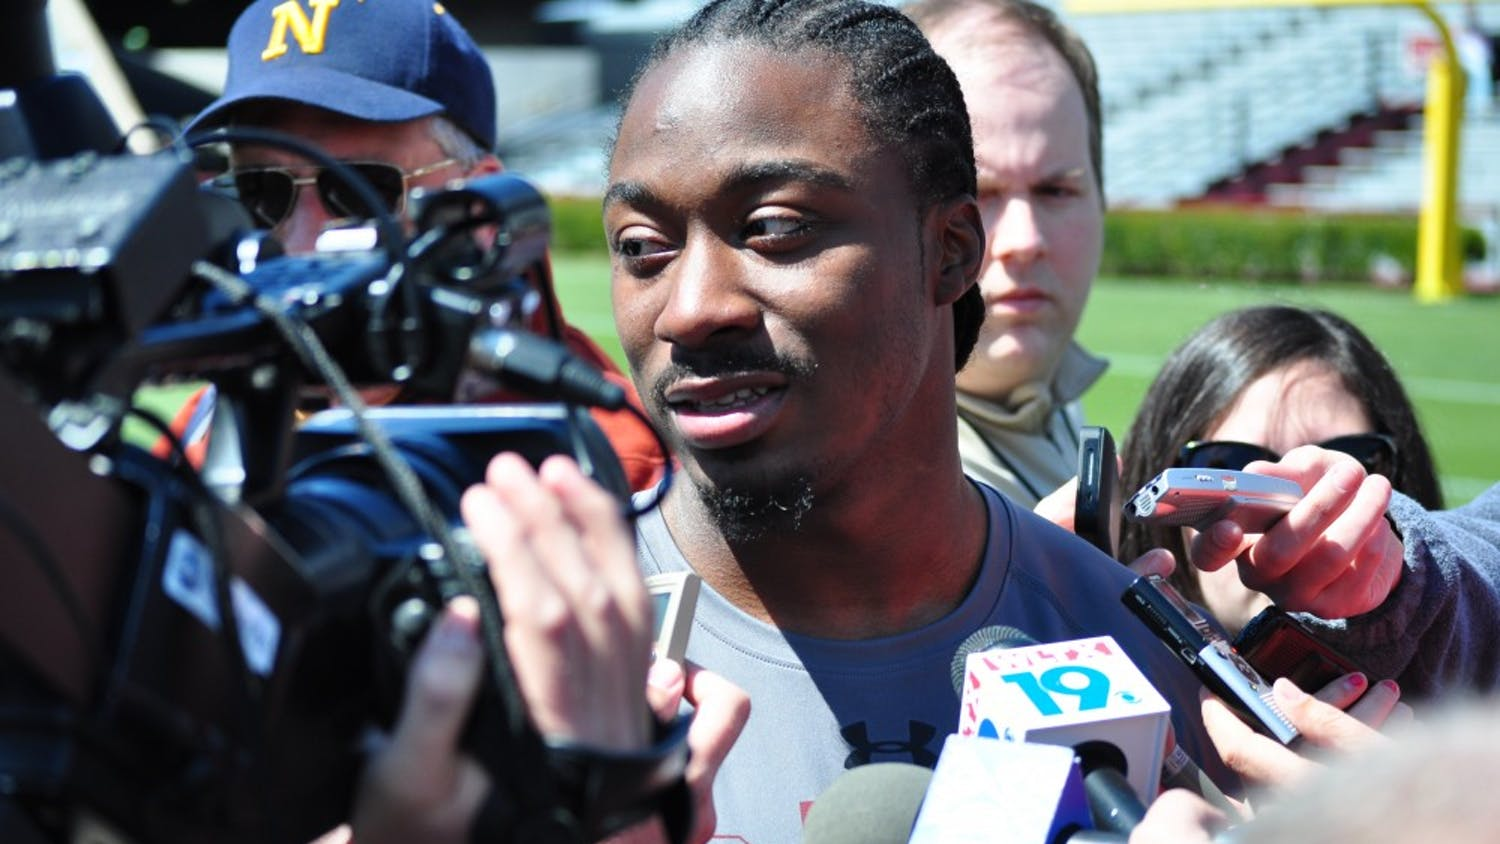 Former USC star tailback Marcus Lattimore said he expects to be ready for the first half of the next NFL season